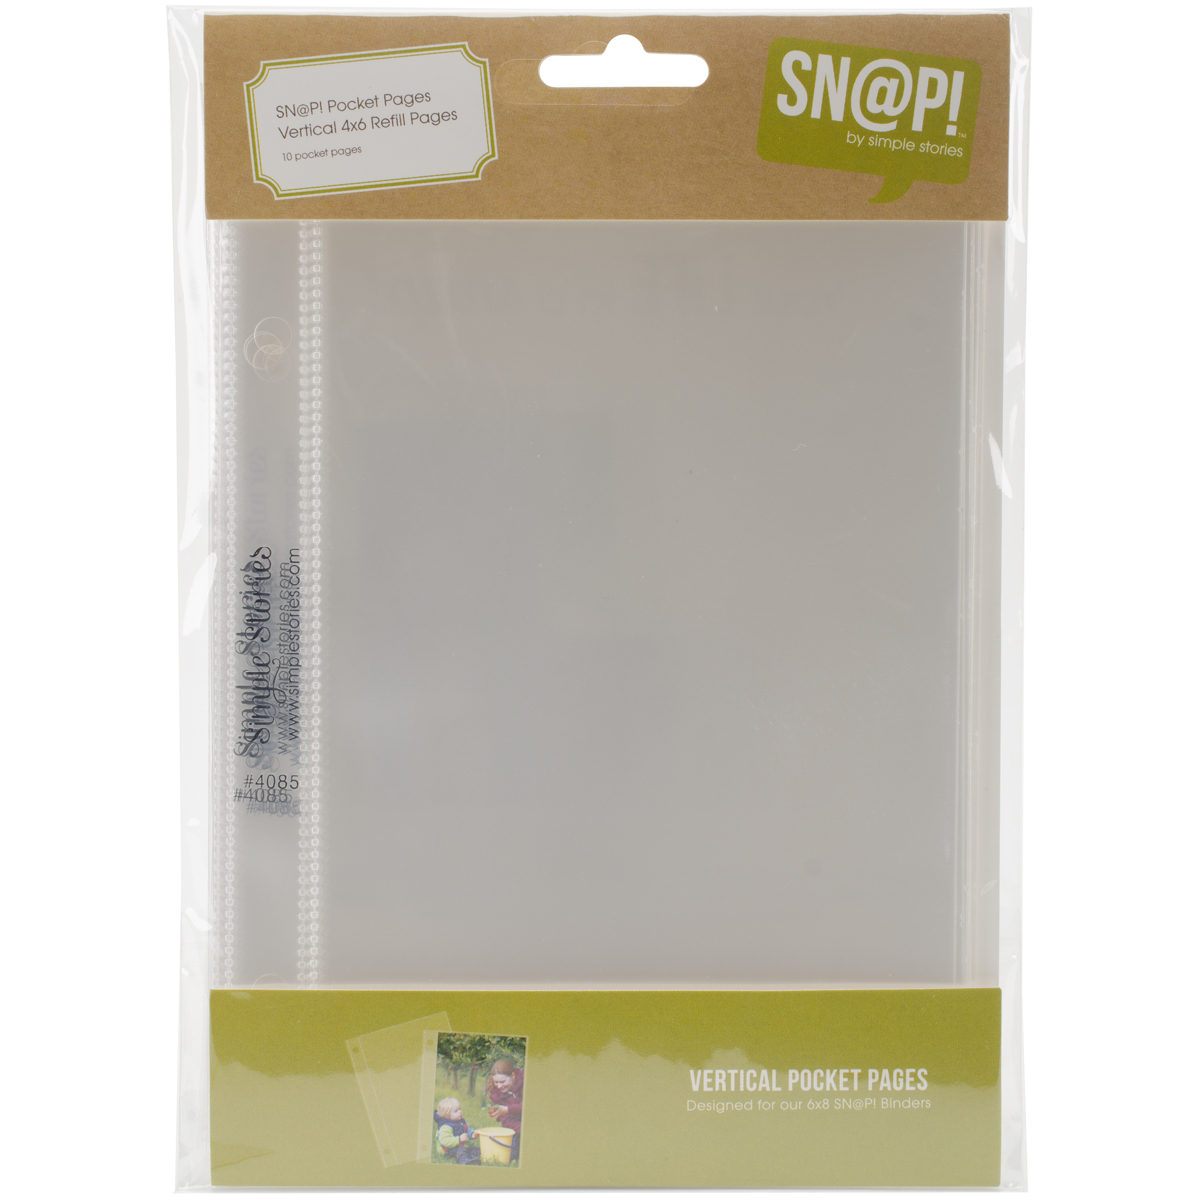 Simple Stories Sn@p! Pocket Pages For 4X6 Binders 10/Pkg-(1) 4X6 Vertical Po...